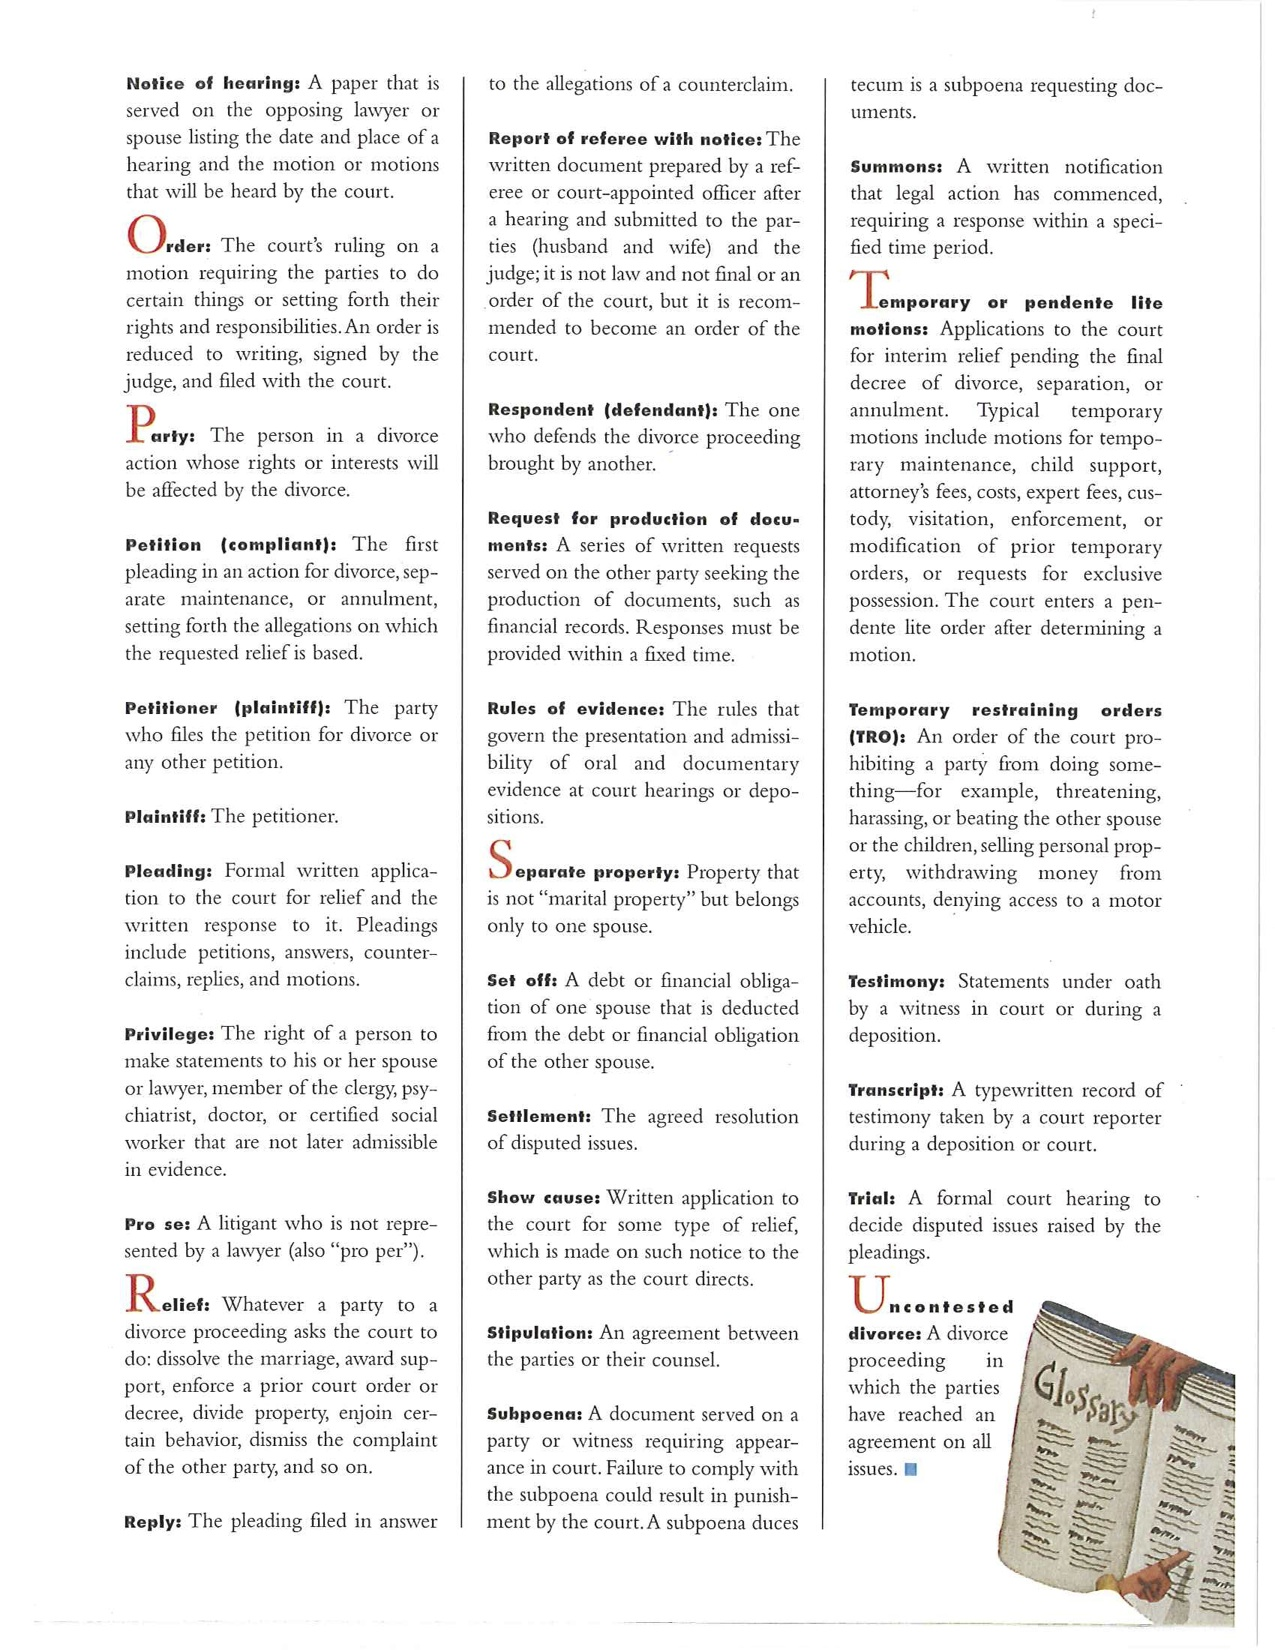 Glossary of legal divorce terms page 3